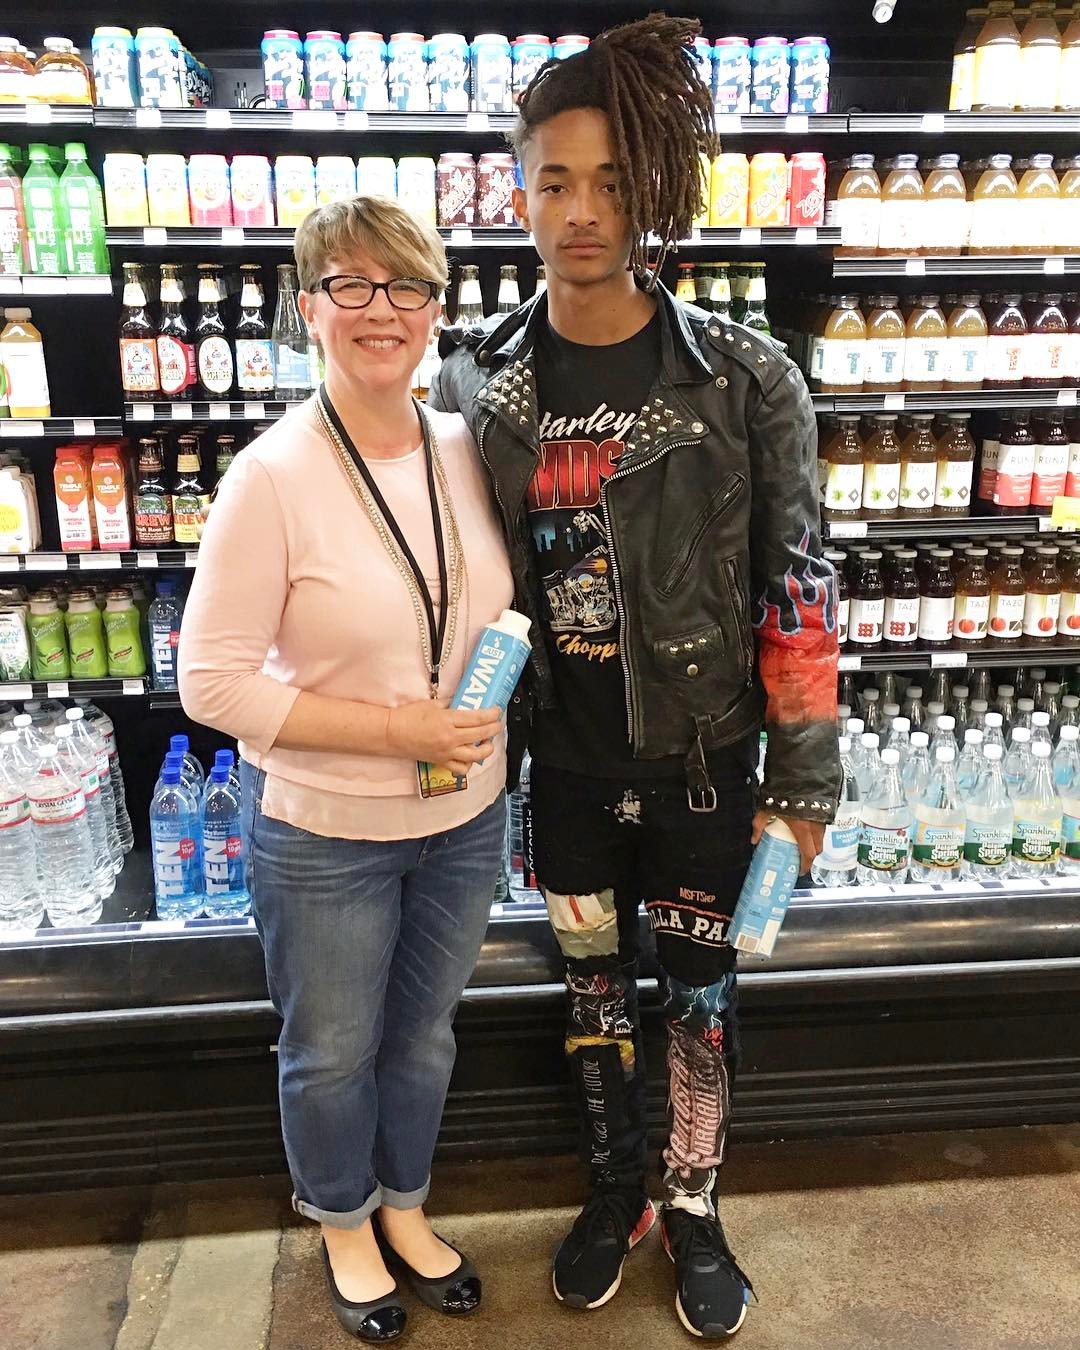 SPOTTED: Jaden Smith In Harley Davidson T-shirt and Adidas NMD Sneakers